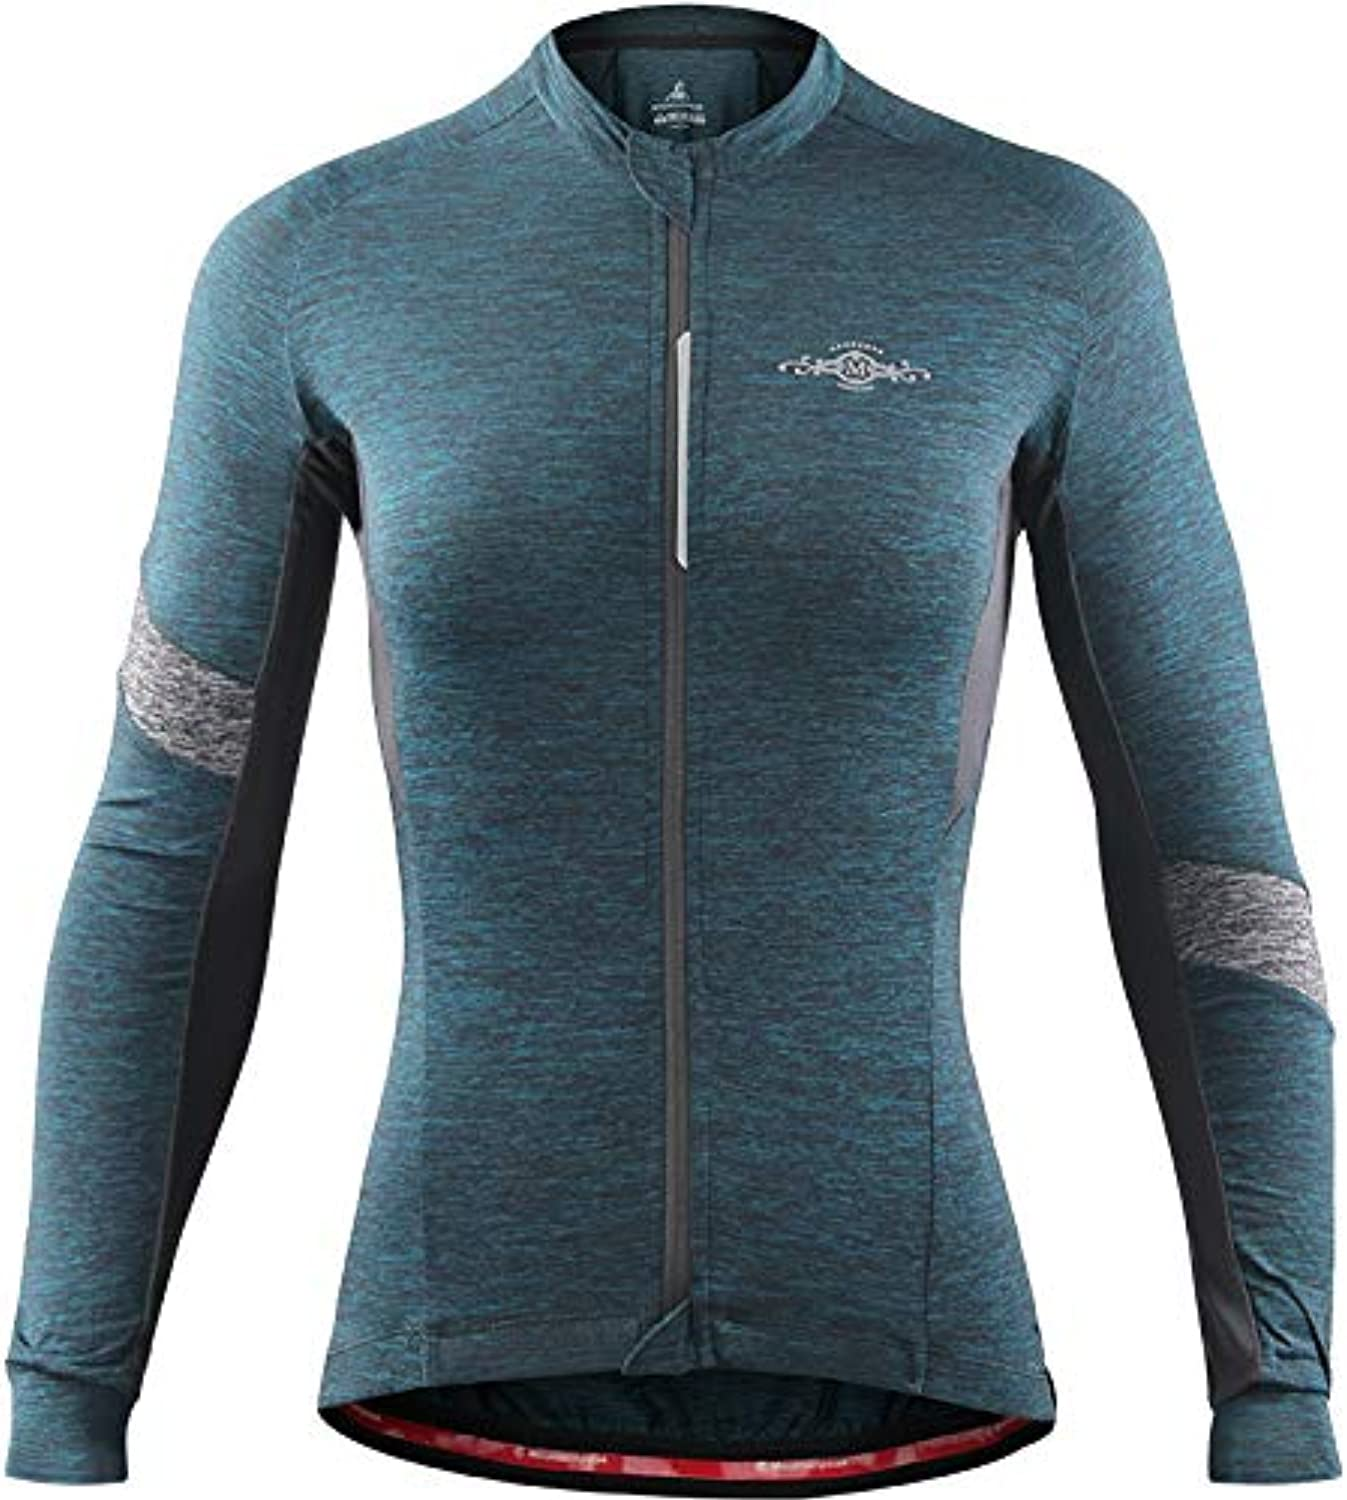 MTP New Summer ice Silk LongSleeved TShirt Female Bicycle Clothing Cycling Clothes Mountain Bike Road Bike Clothes Clothes